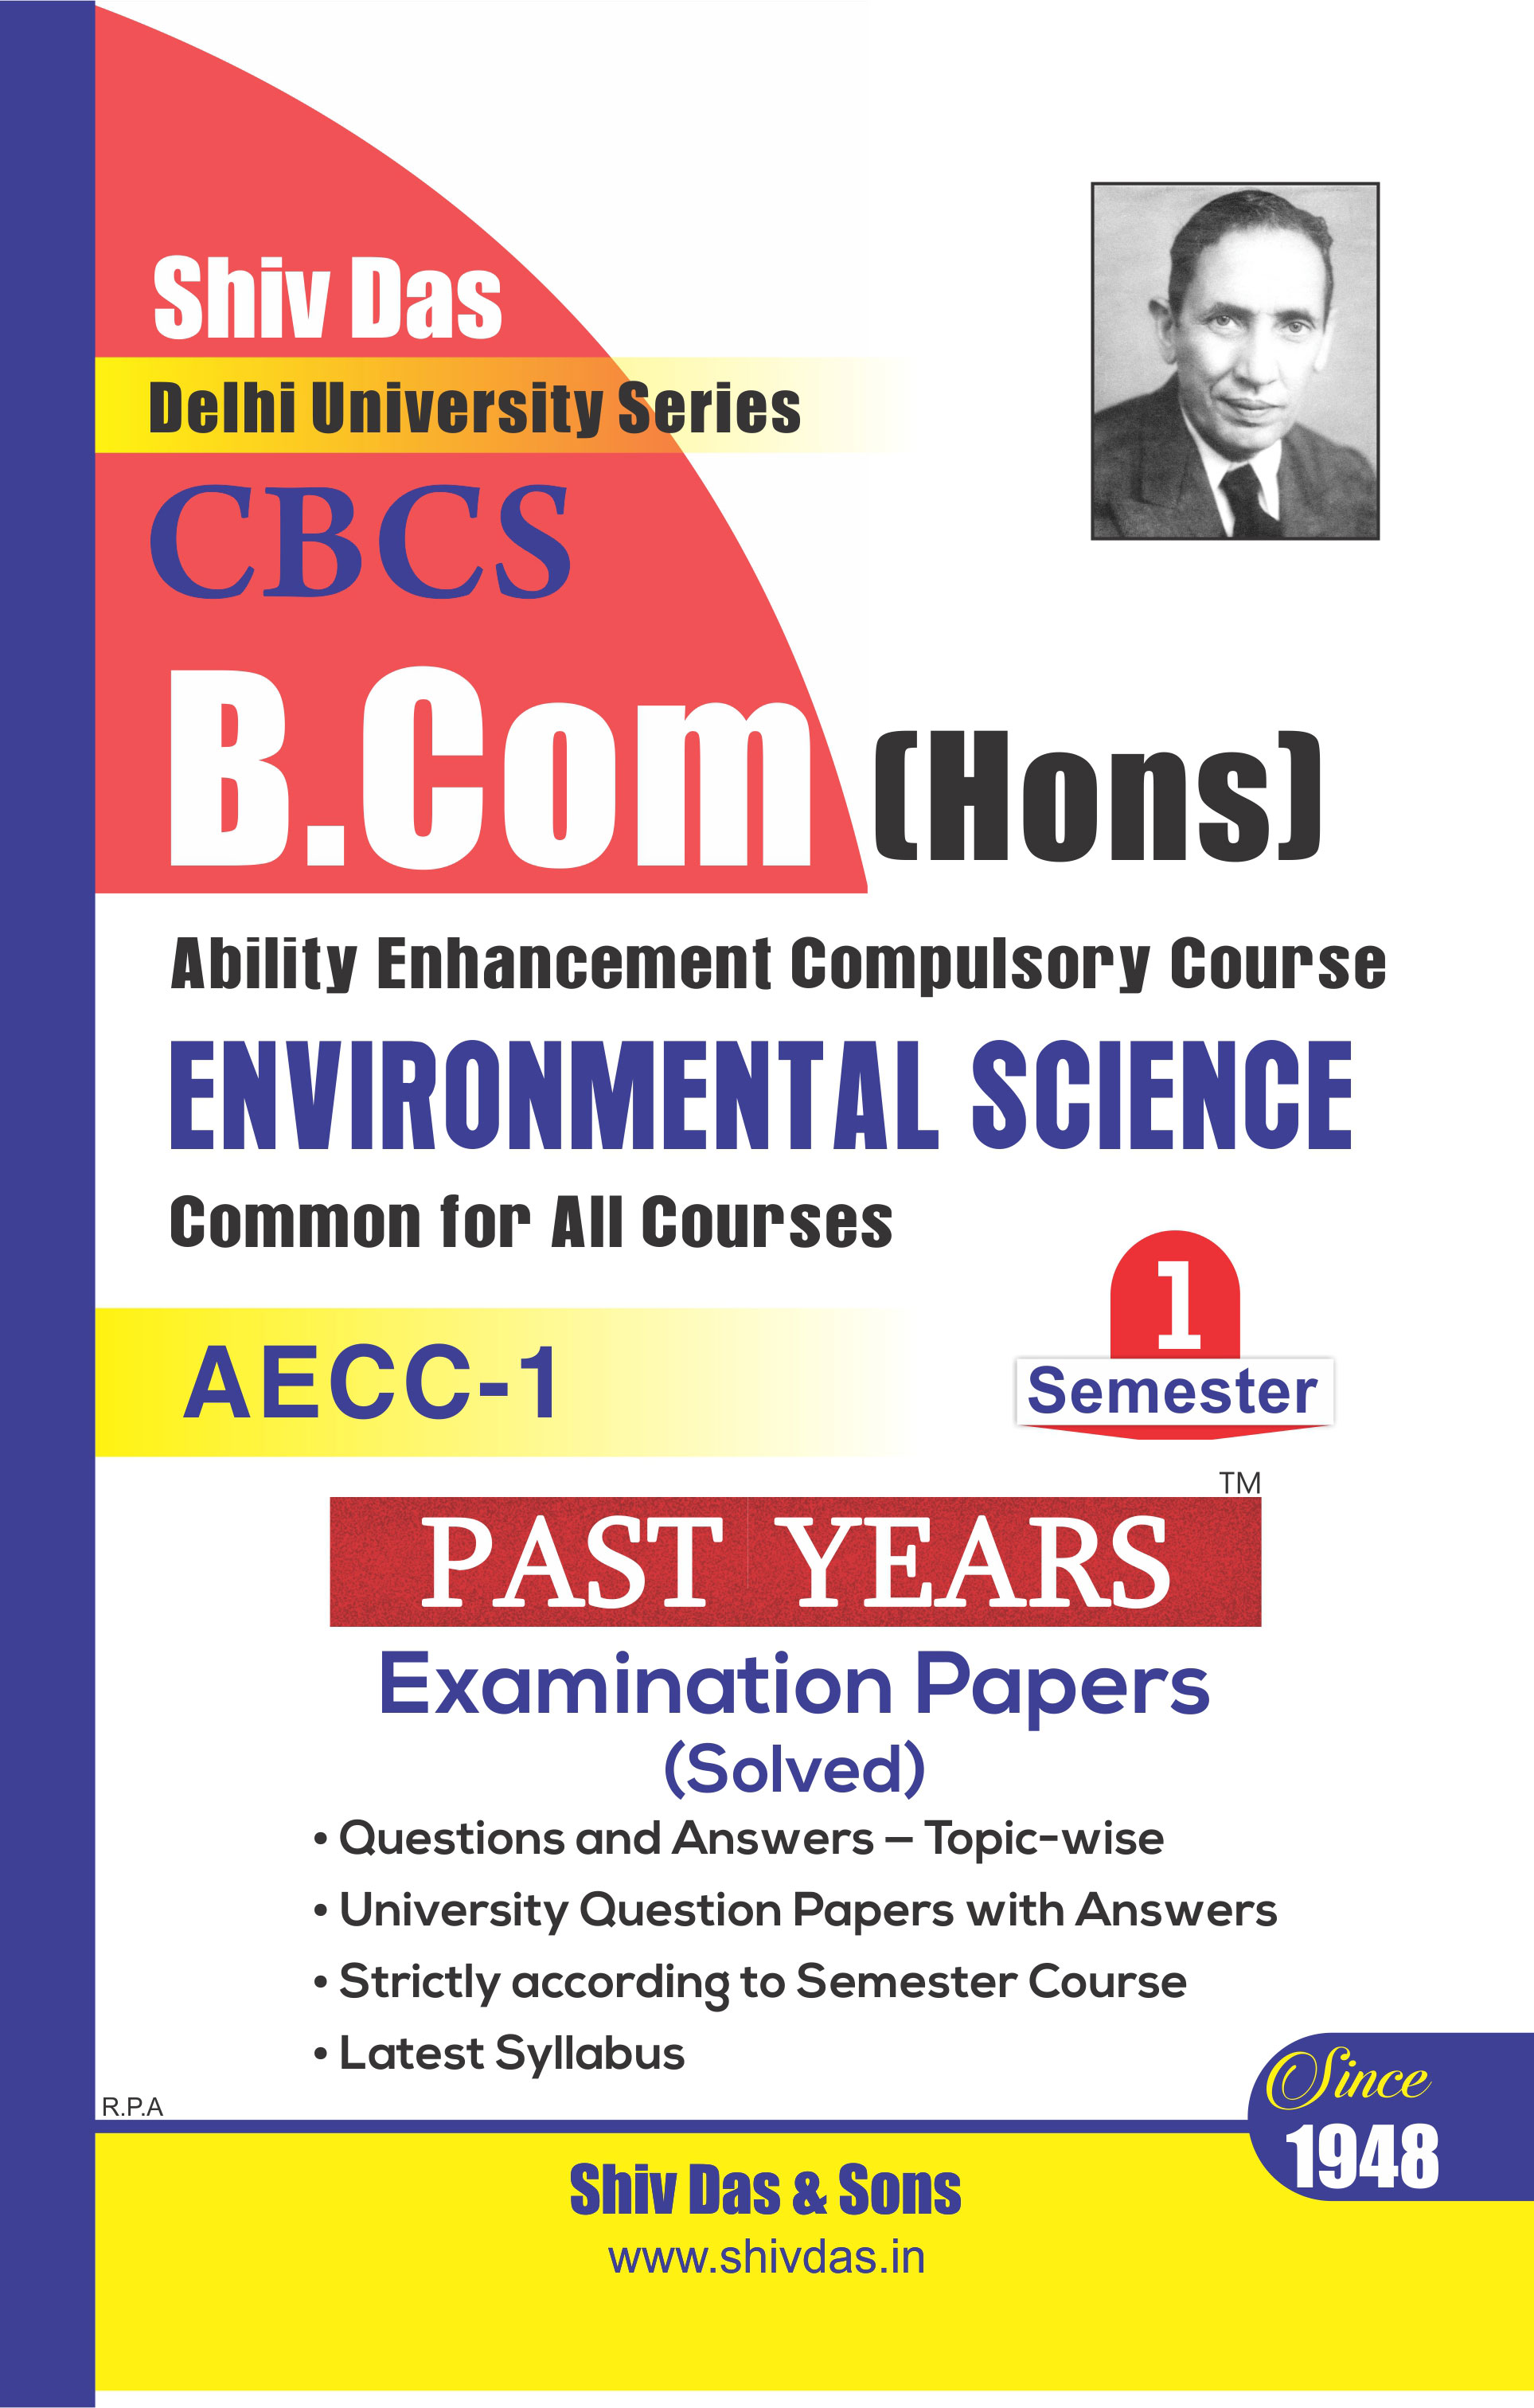 Environmental Science for B.Com Hons. Semester 1